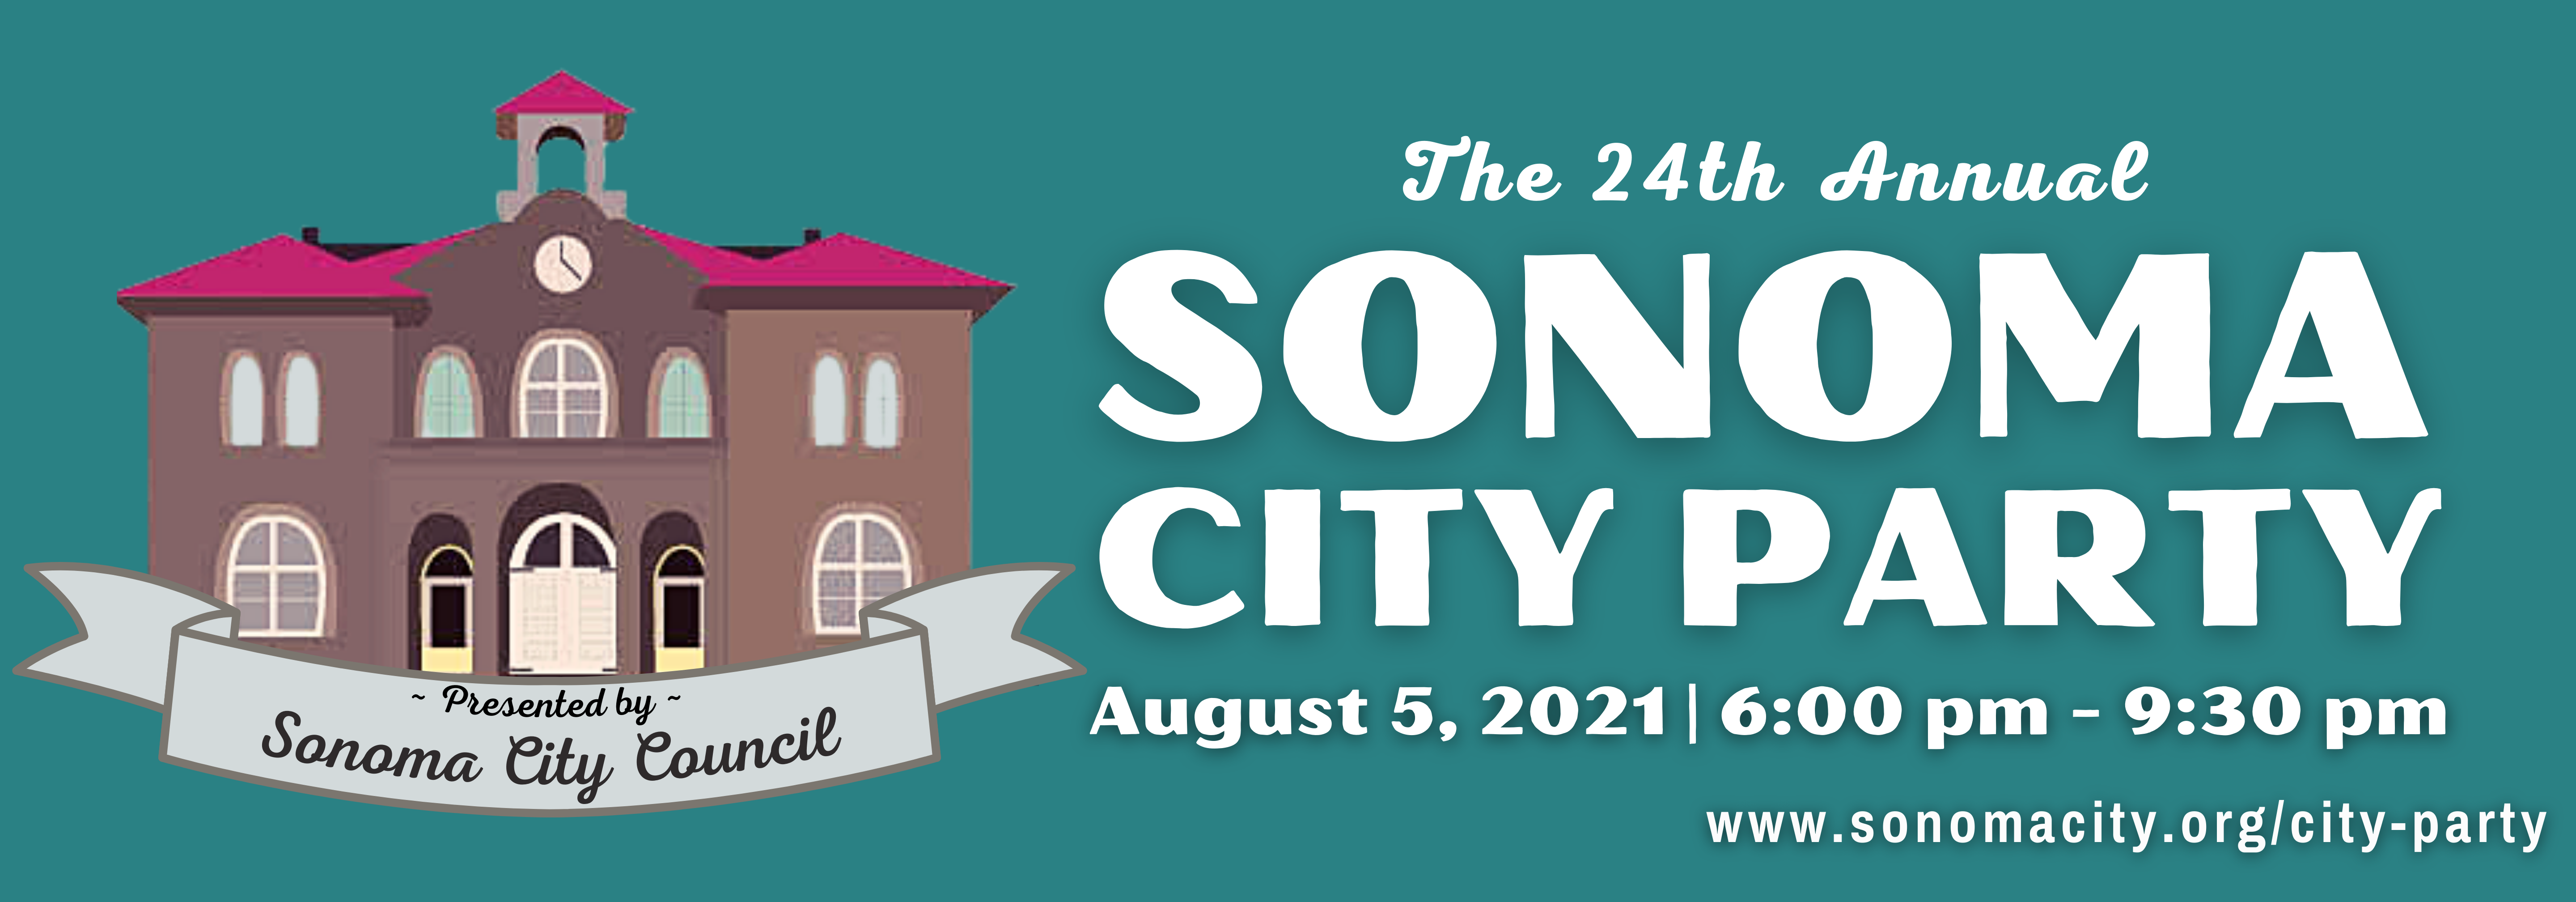 The Sonoma City Party Returns to the Plaza, August  5, 2021, 6:00 pm - 9:30 pm